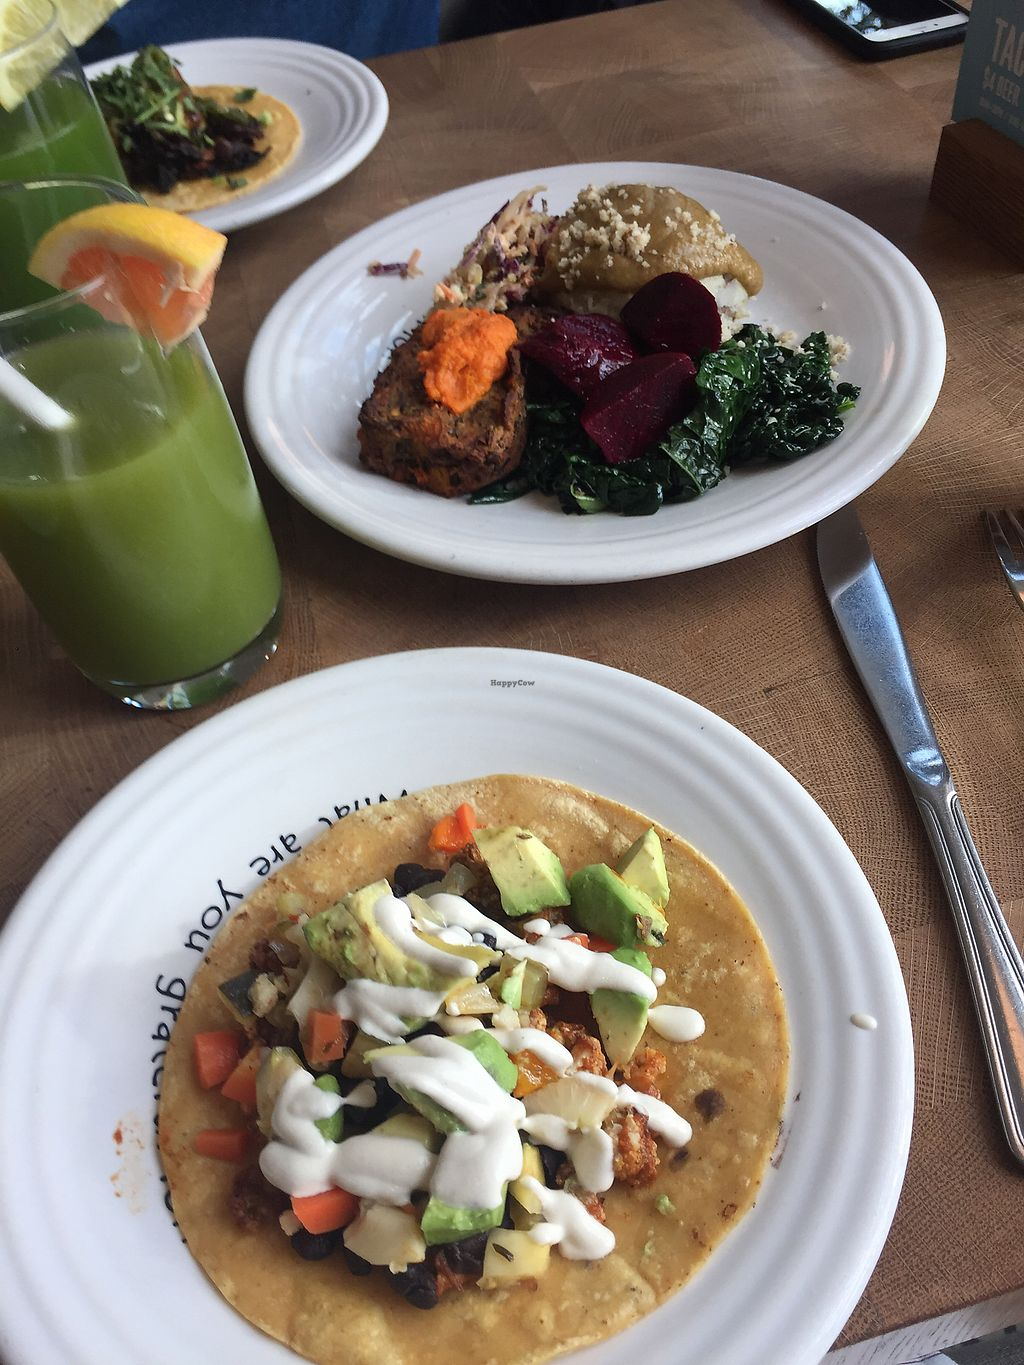 """Photo of Cafe Gratitude  by <a href=""""/members/profile/ma_ferms"""">ma_ferms</a> <br/>Tacos <br/> February 14, 2018  - <a href='/contact/abuse/image/63145/359126'>Report</a>"""